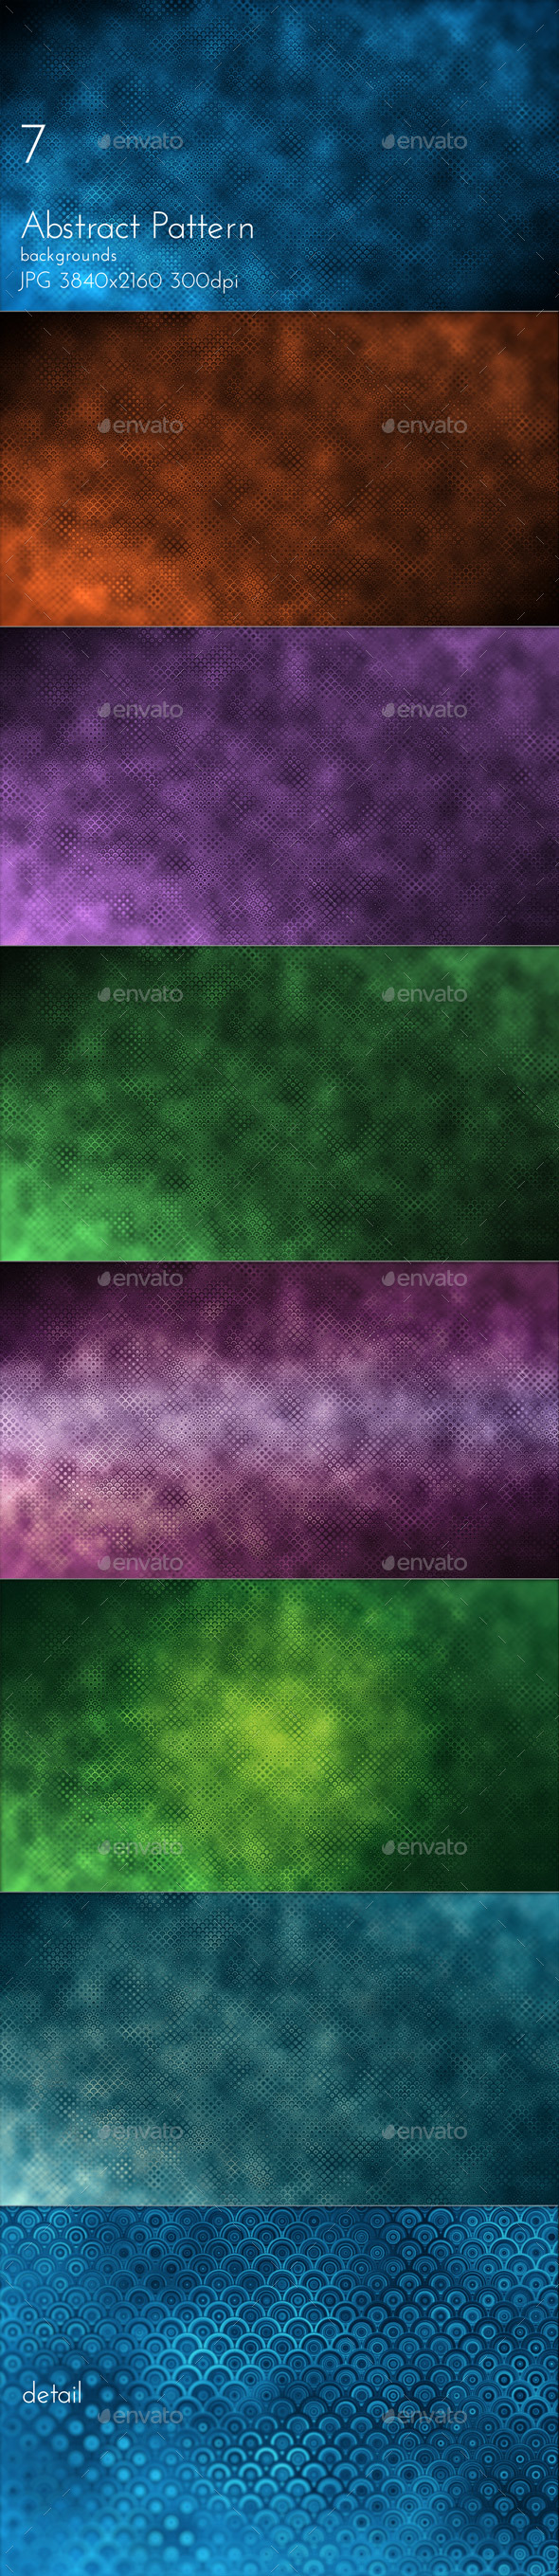 Abstract Dark Pattern - Abstract Backgrounds